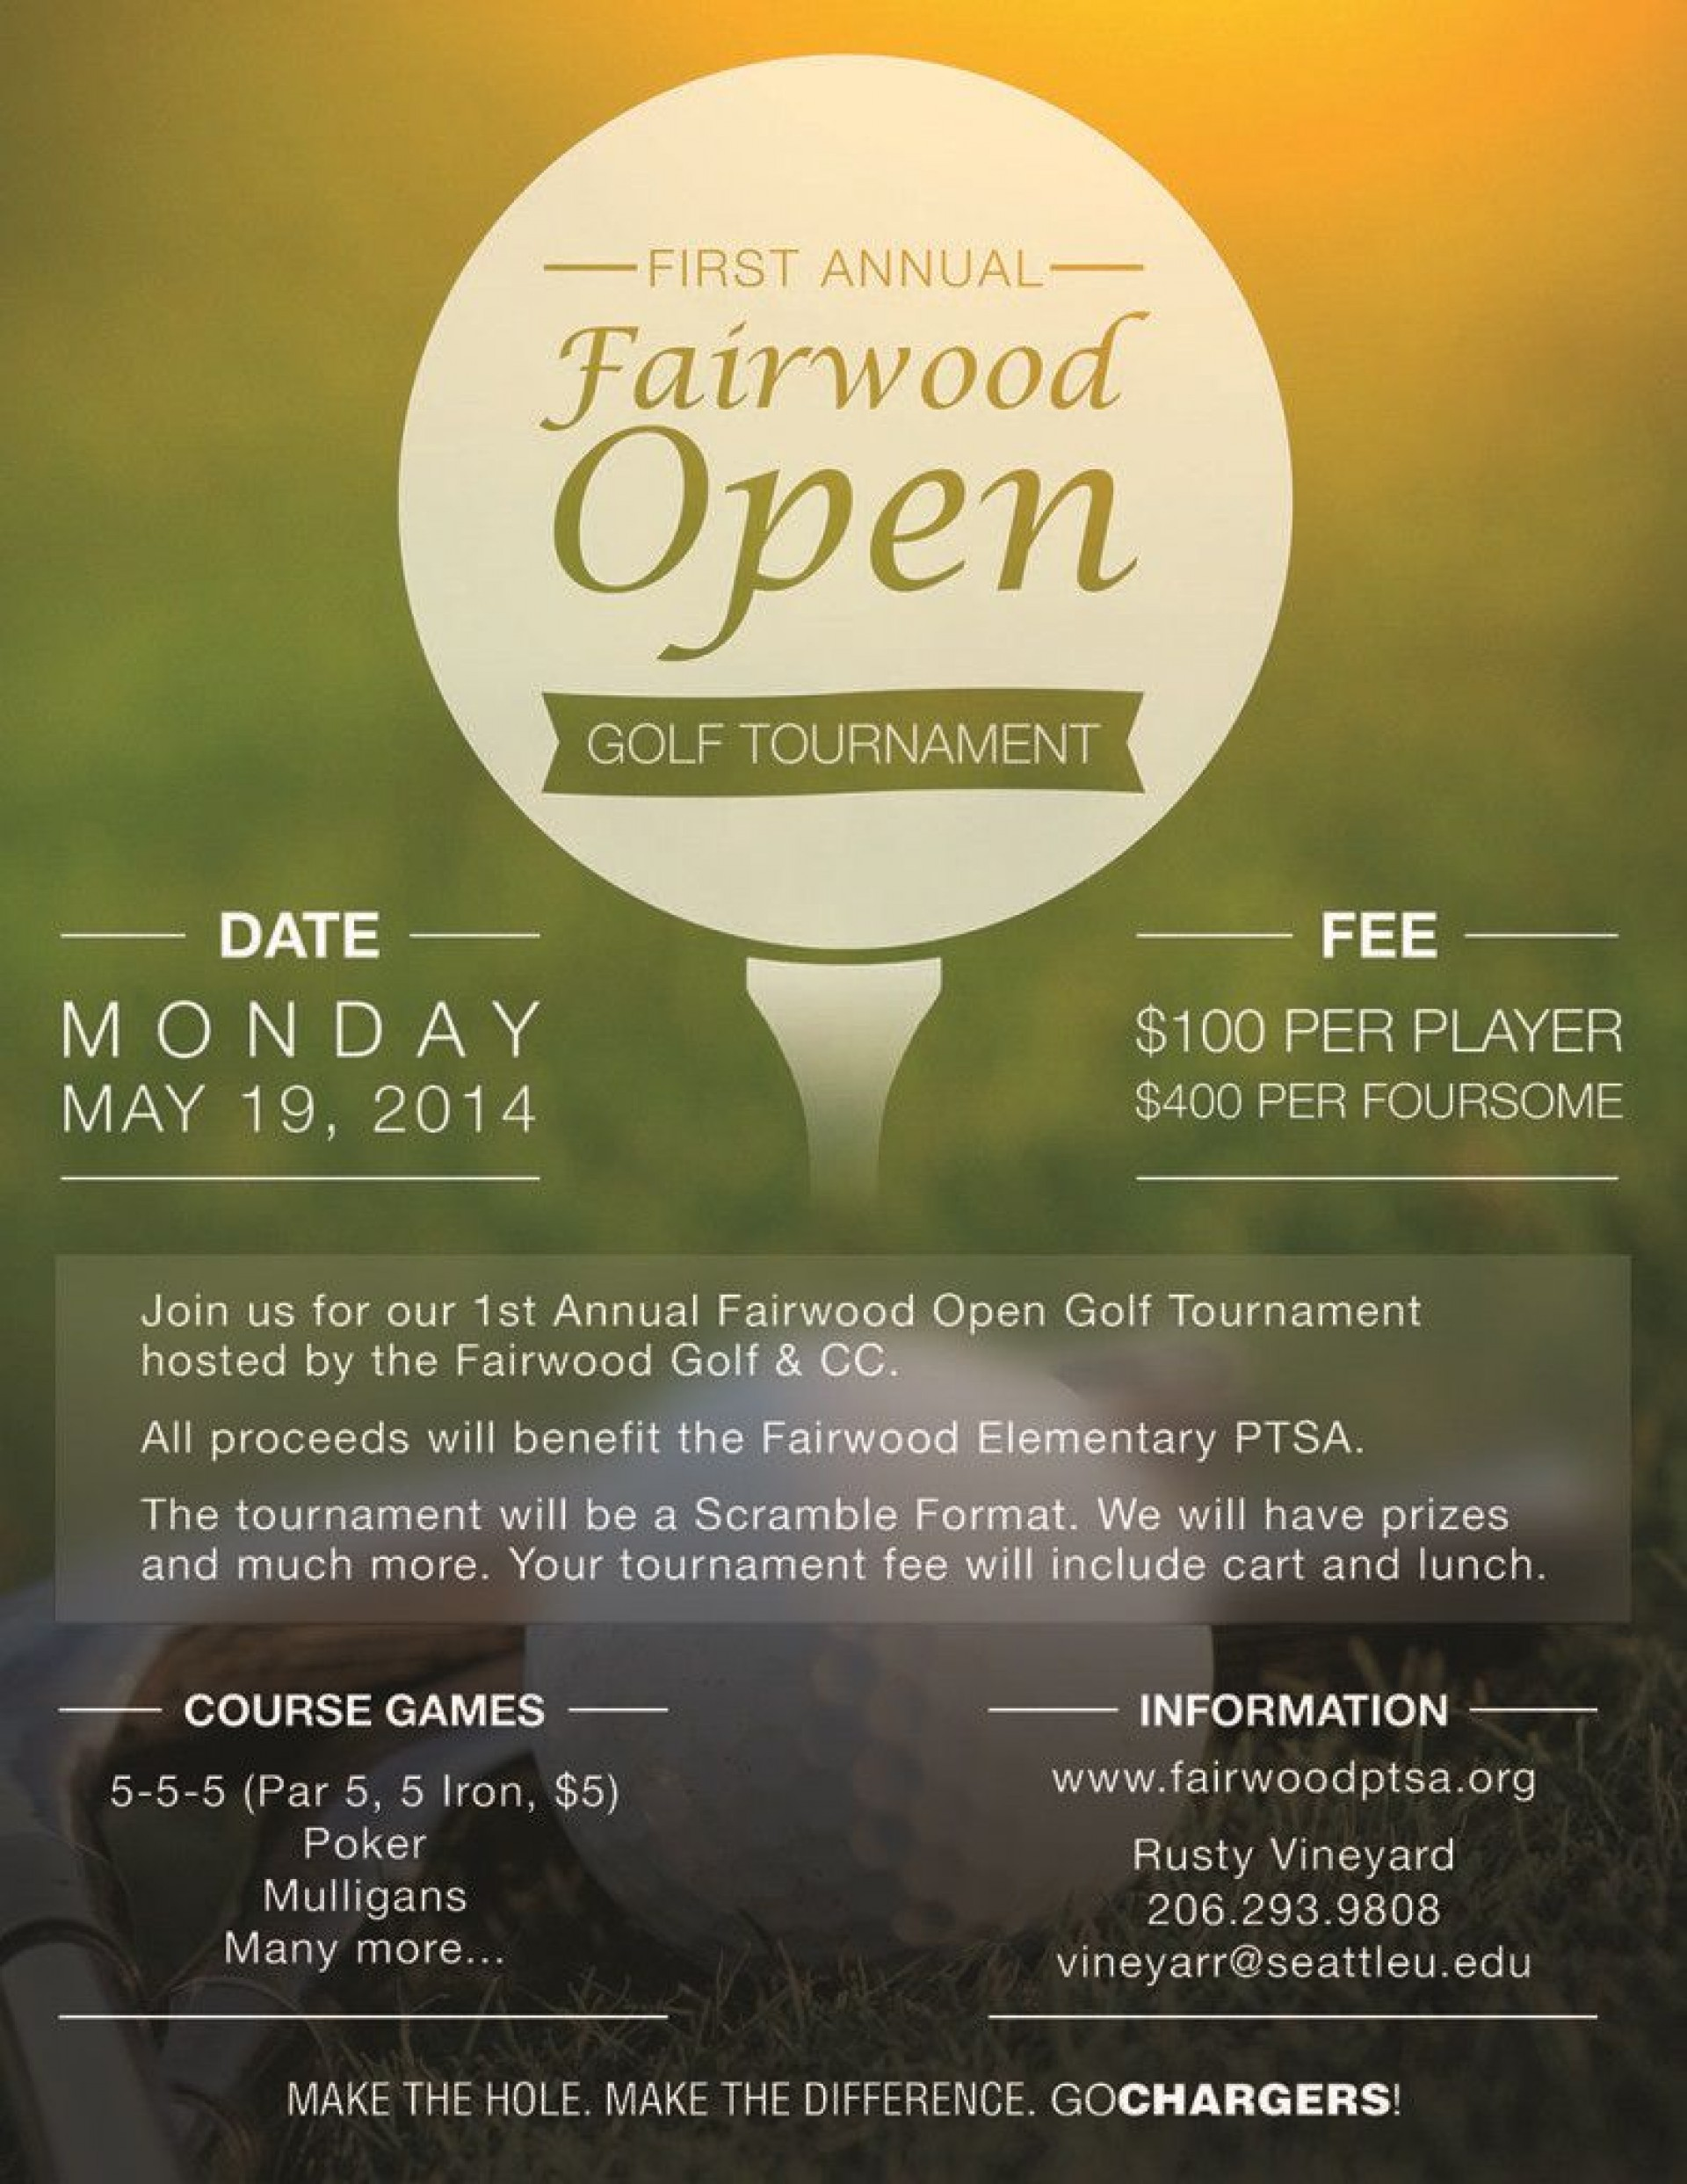 006 Archaicawful Free Charity Golf Tournament Flyer Template Design 1920